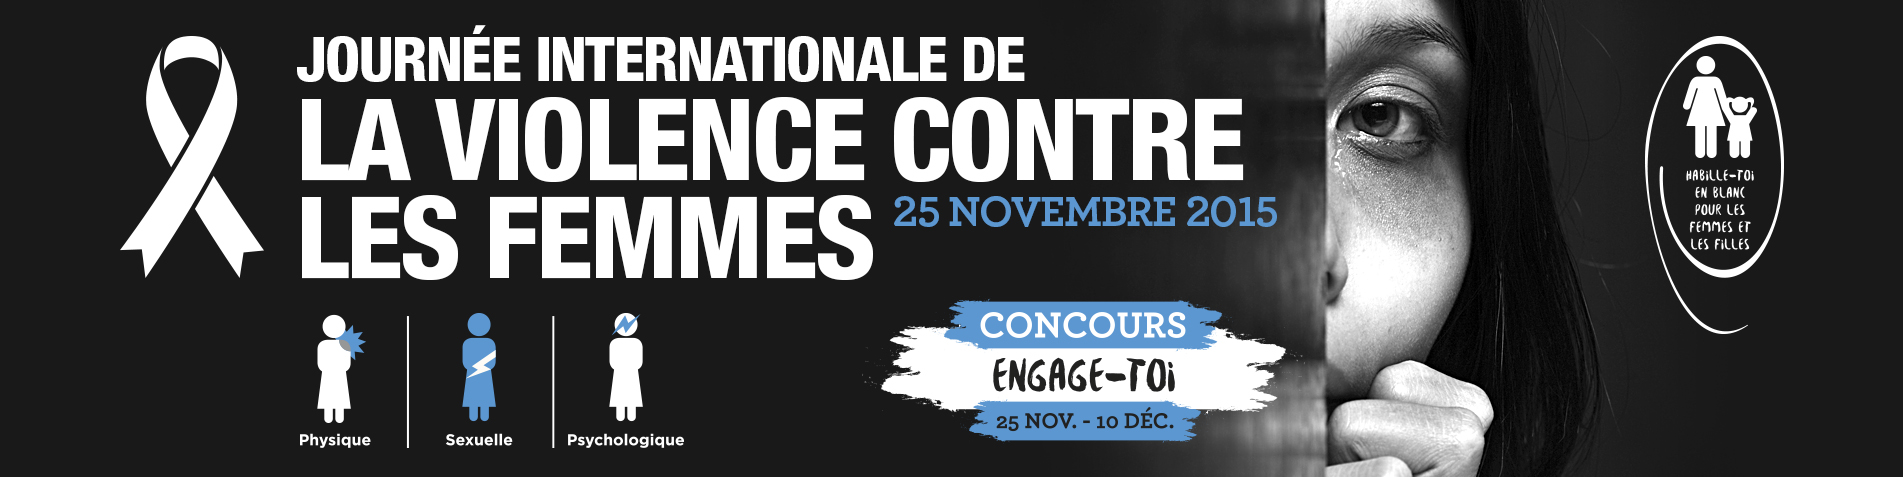 csf_website_banner_violence_contre_femmes